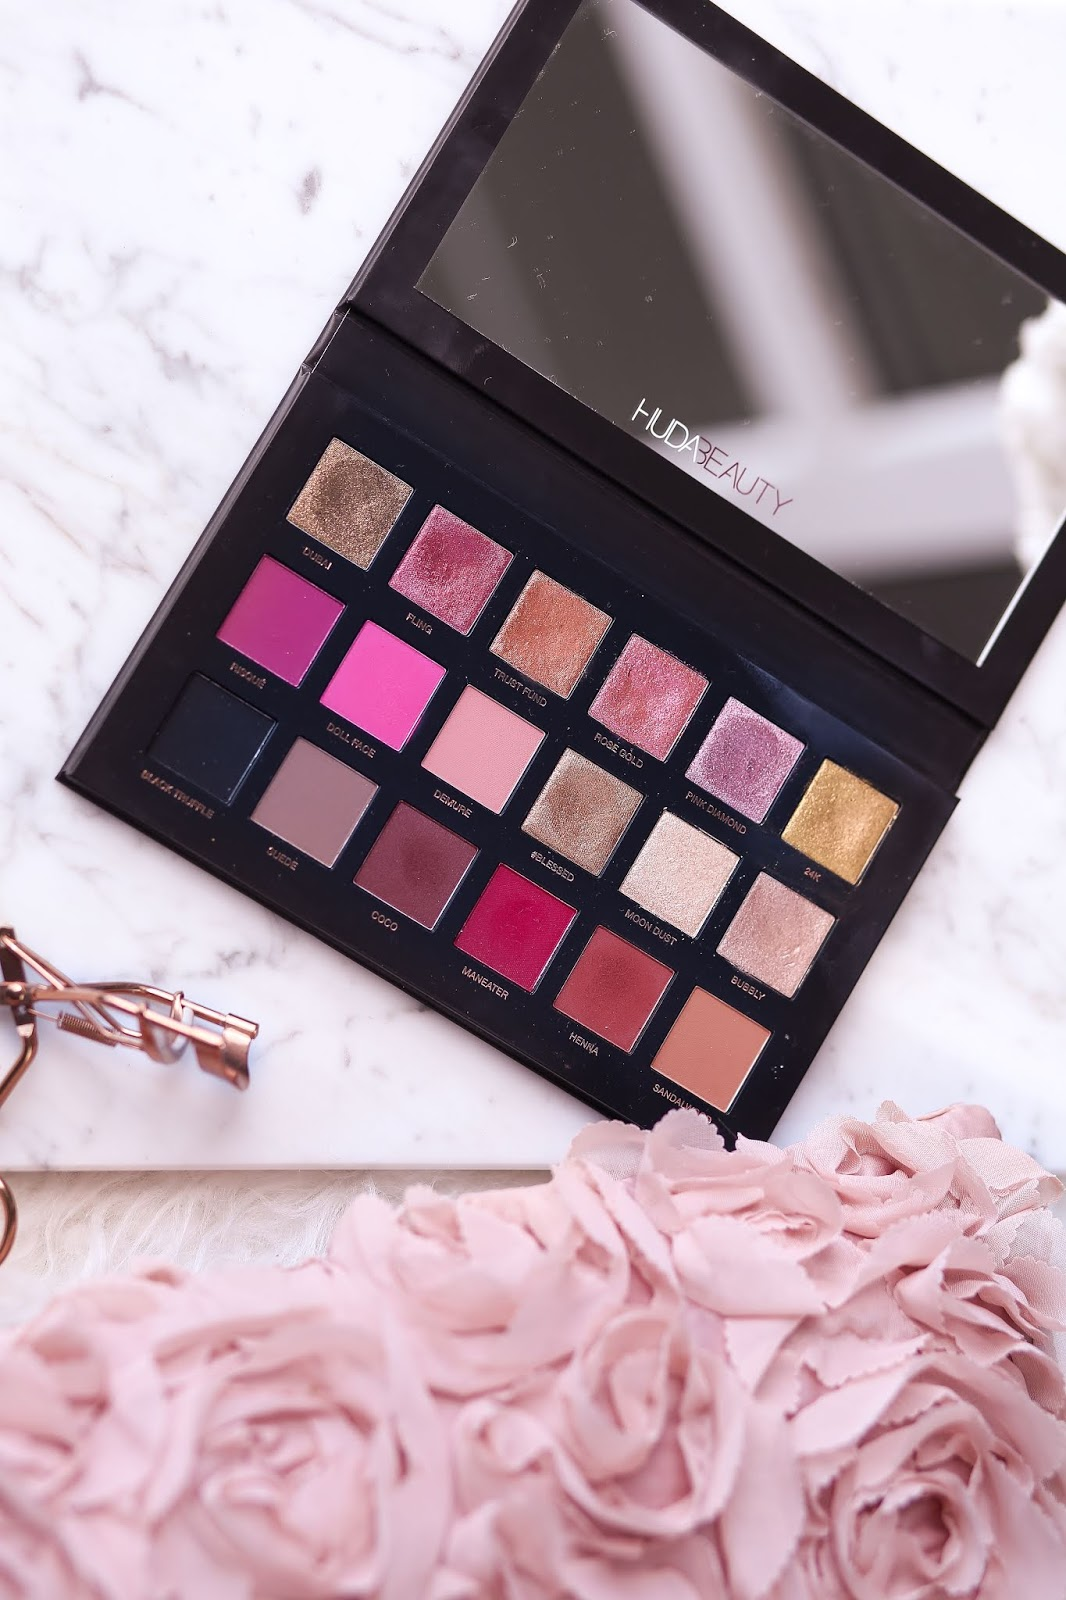 huda beauty rose gold palette remastered 2018 opinie